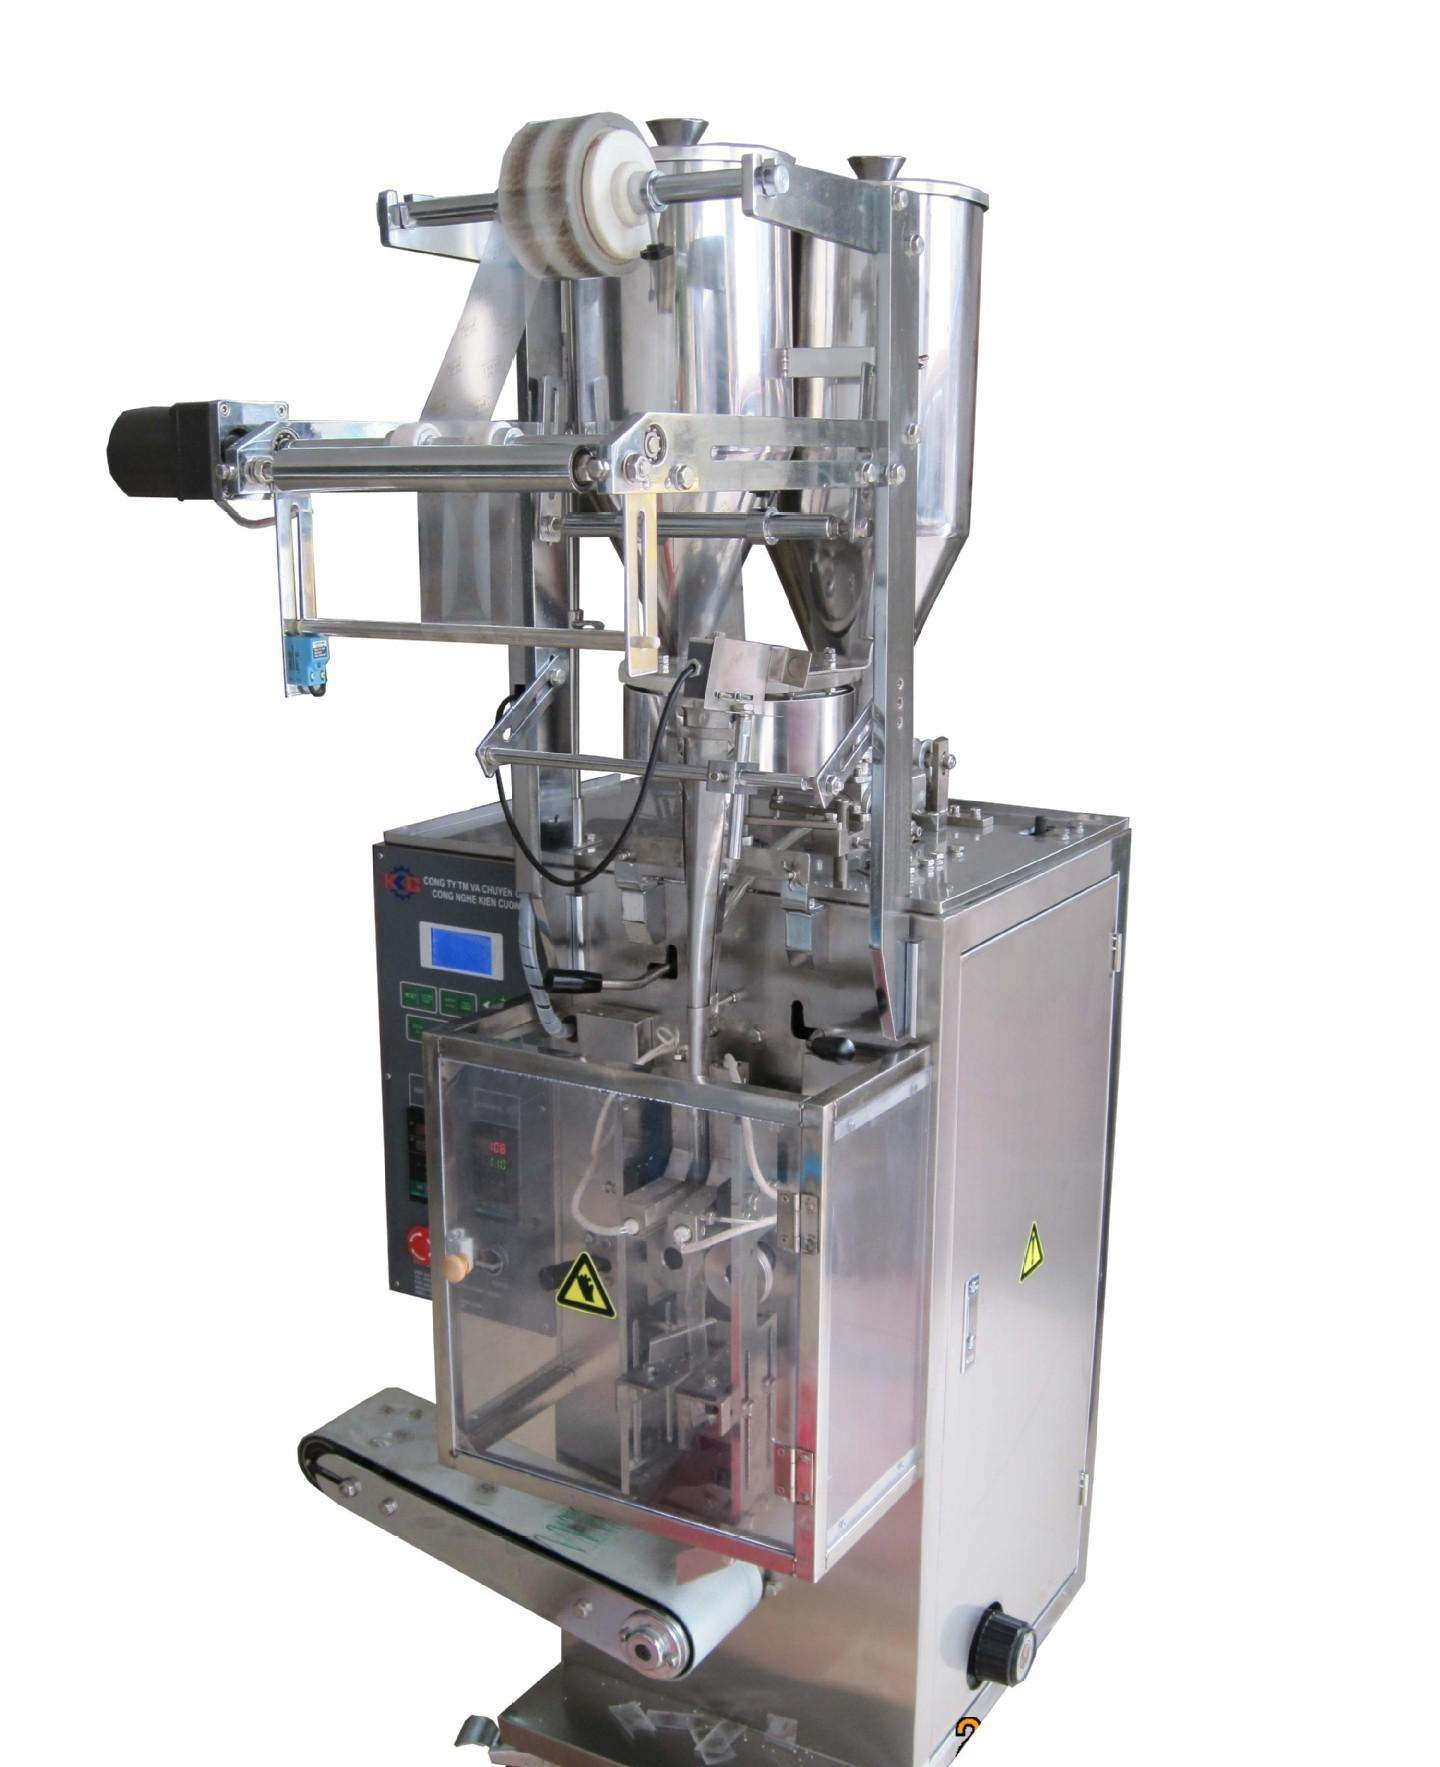 banana chips packaging machine - manufacturers, suppliers